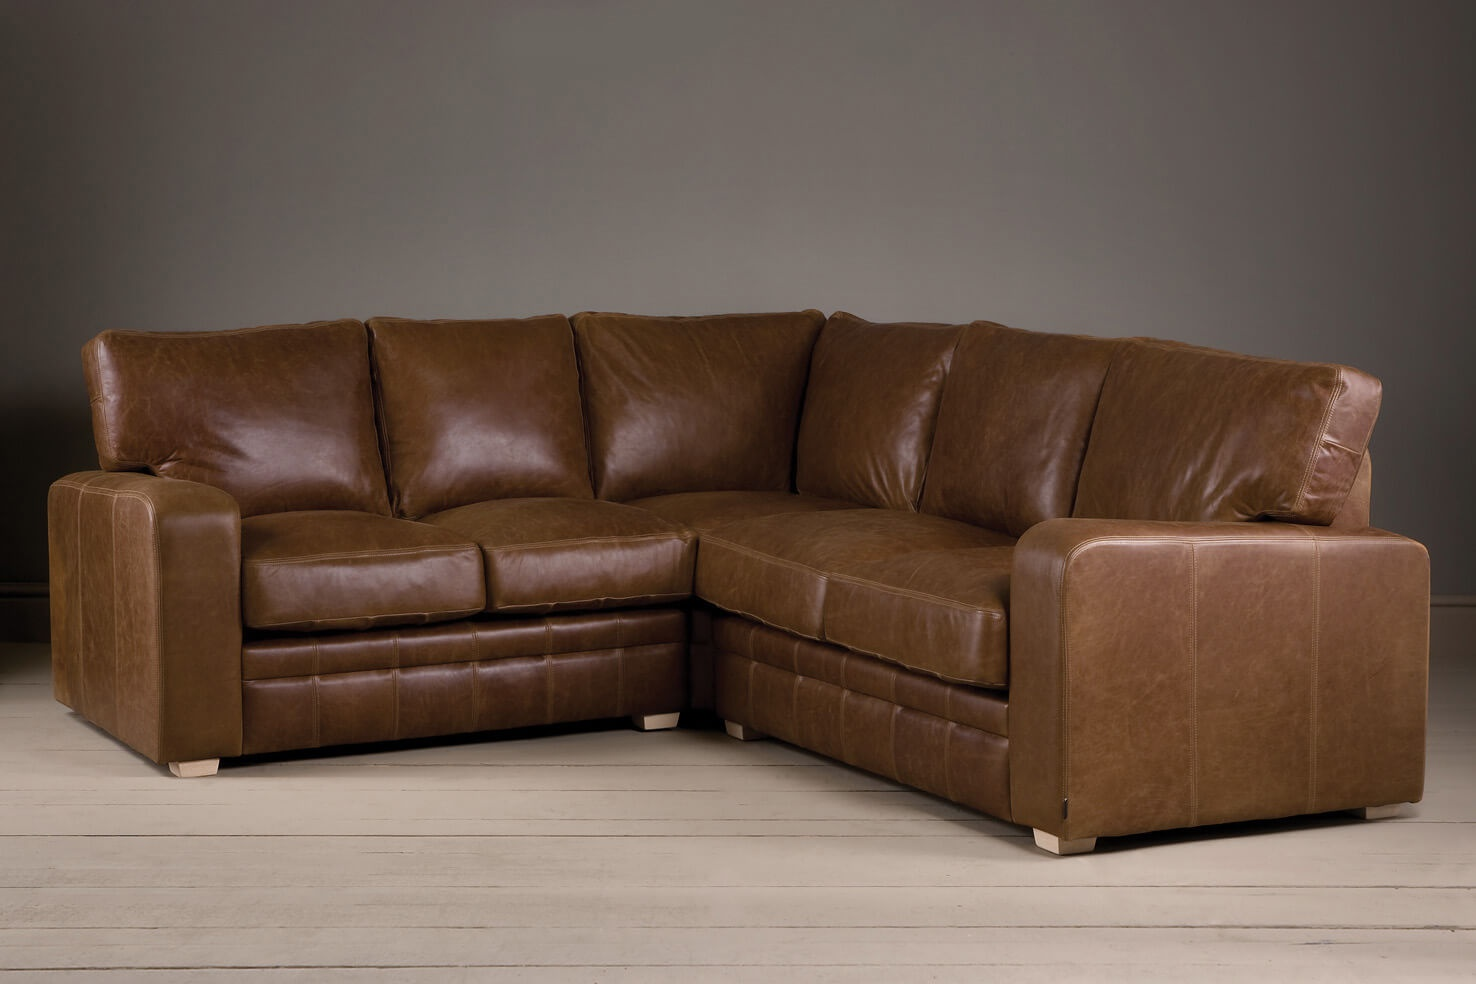 Leather corner sofa-a style statement in your home – yonohomedesign.com